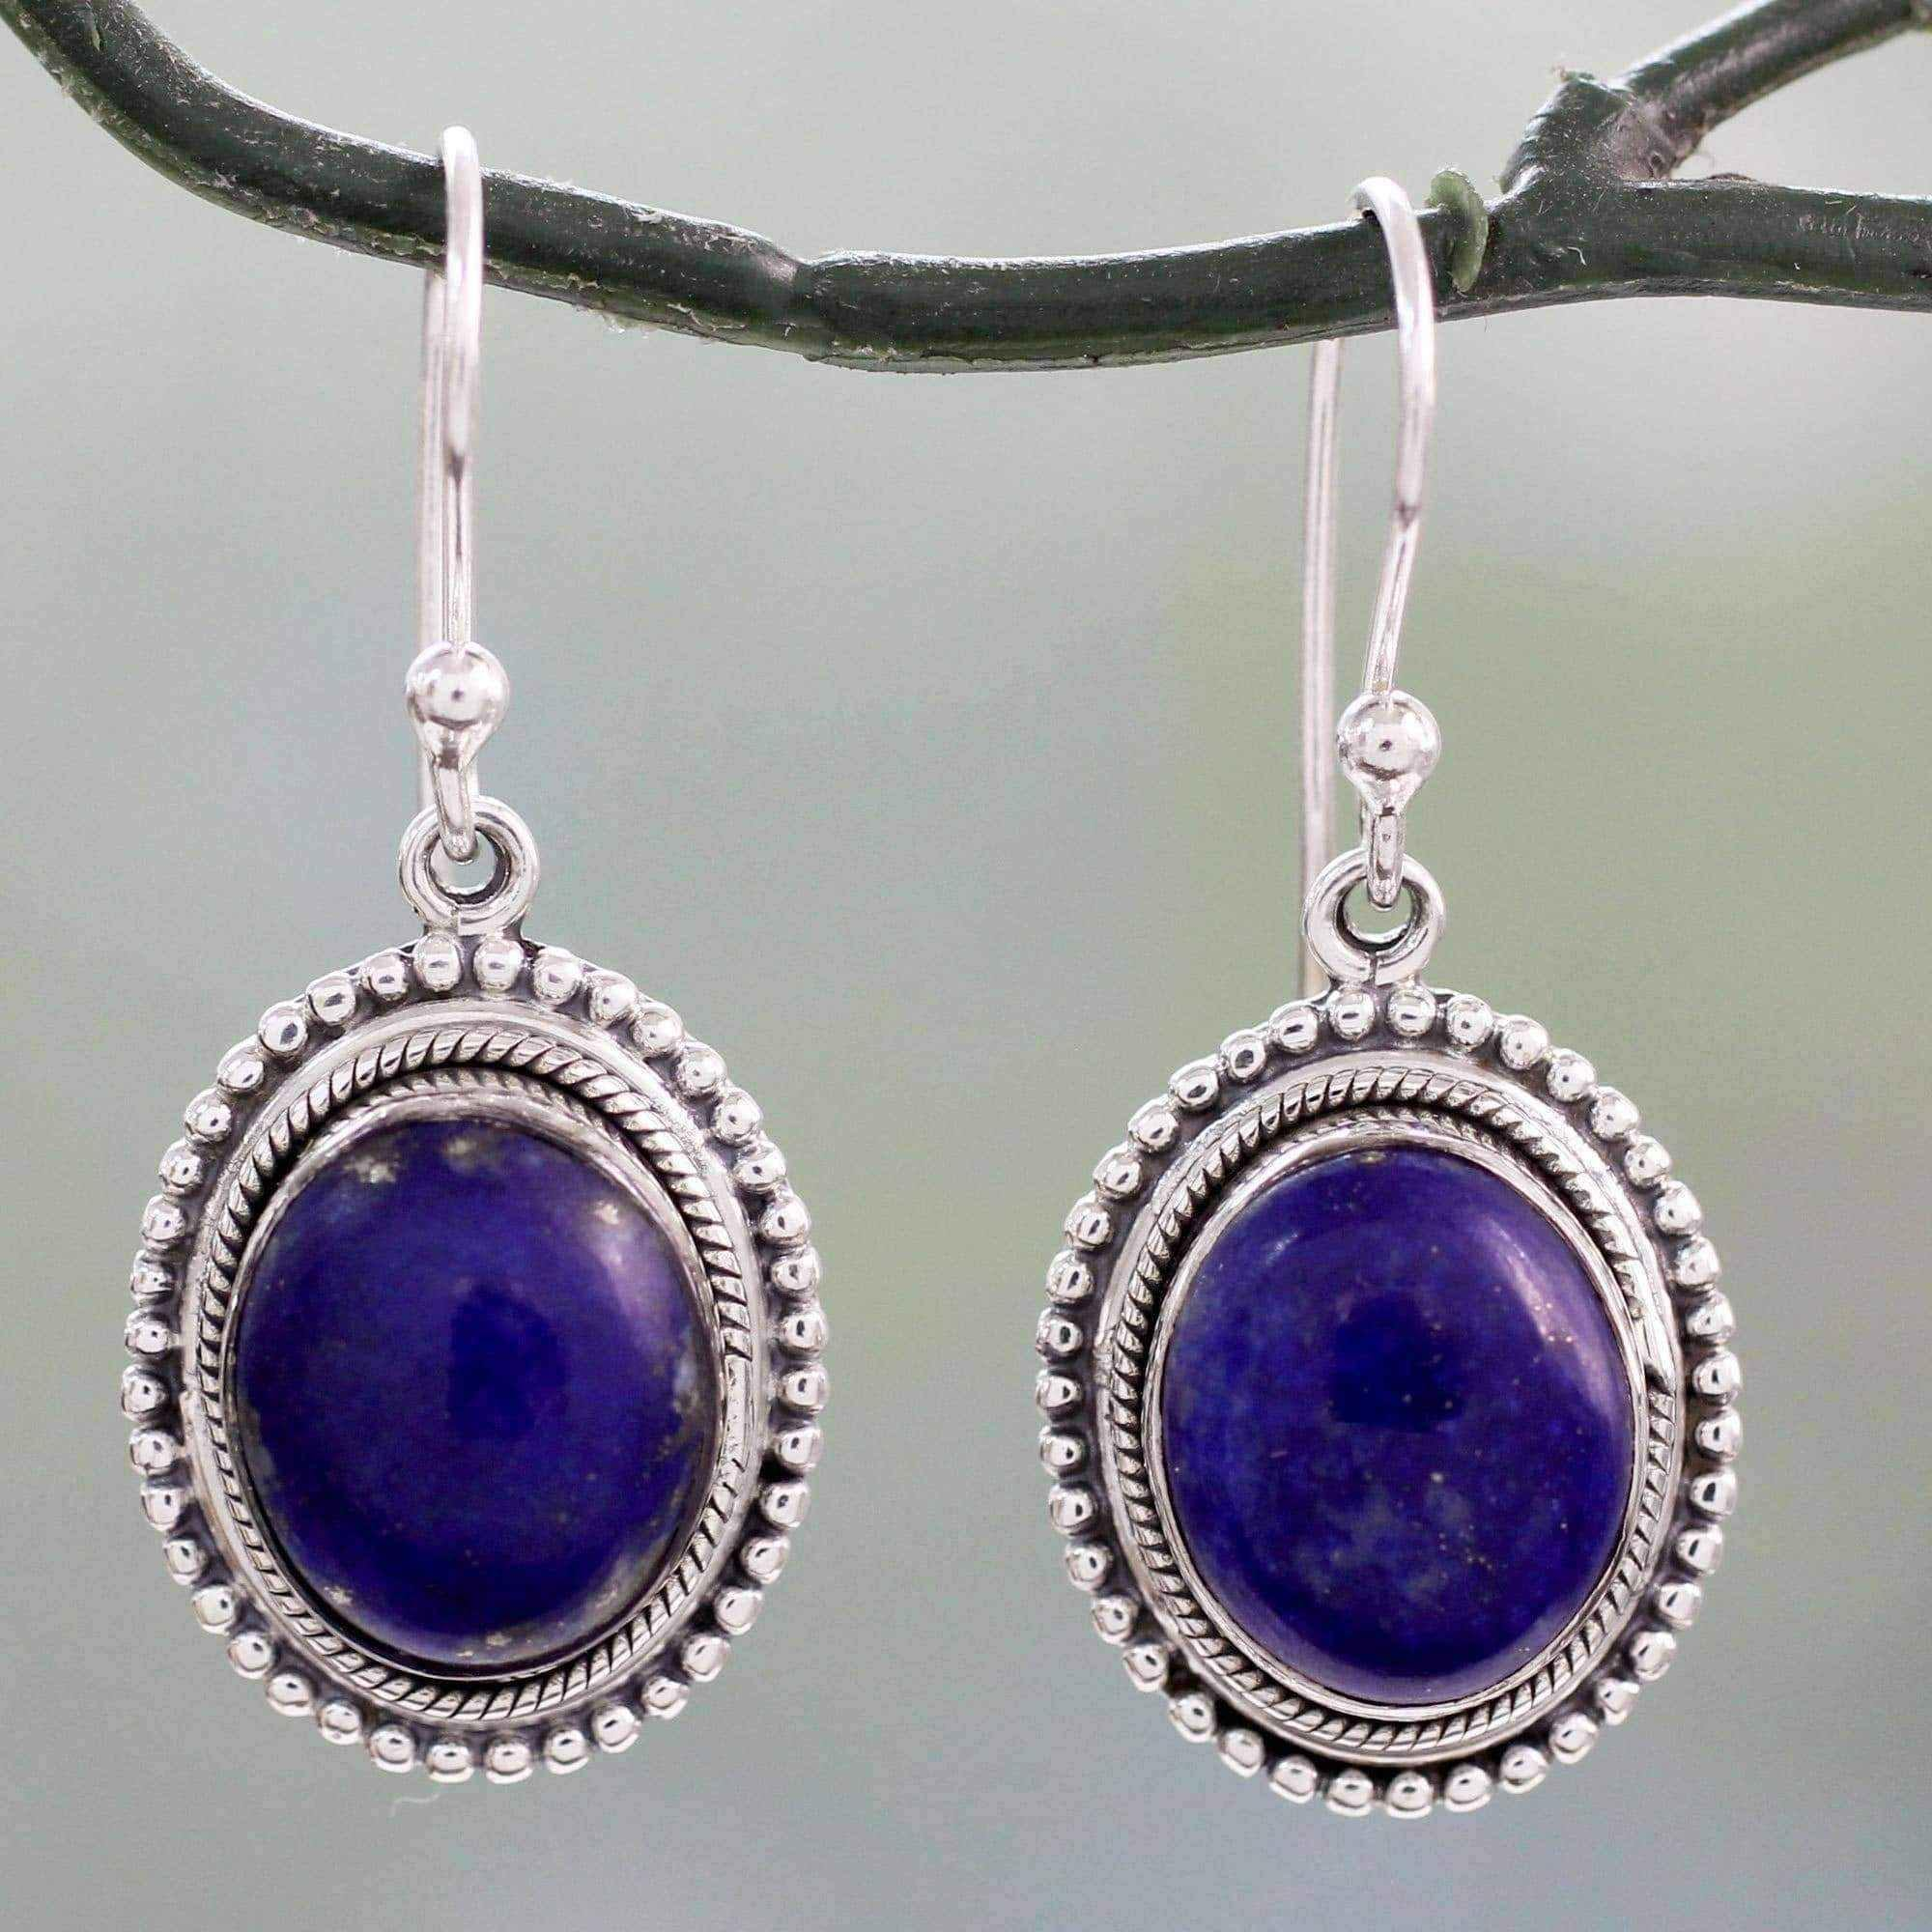 jewellery lazuli dsc tops and round product stud handmade silver earrings daira lapis noqra